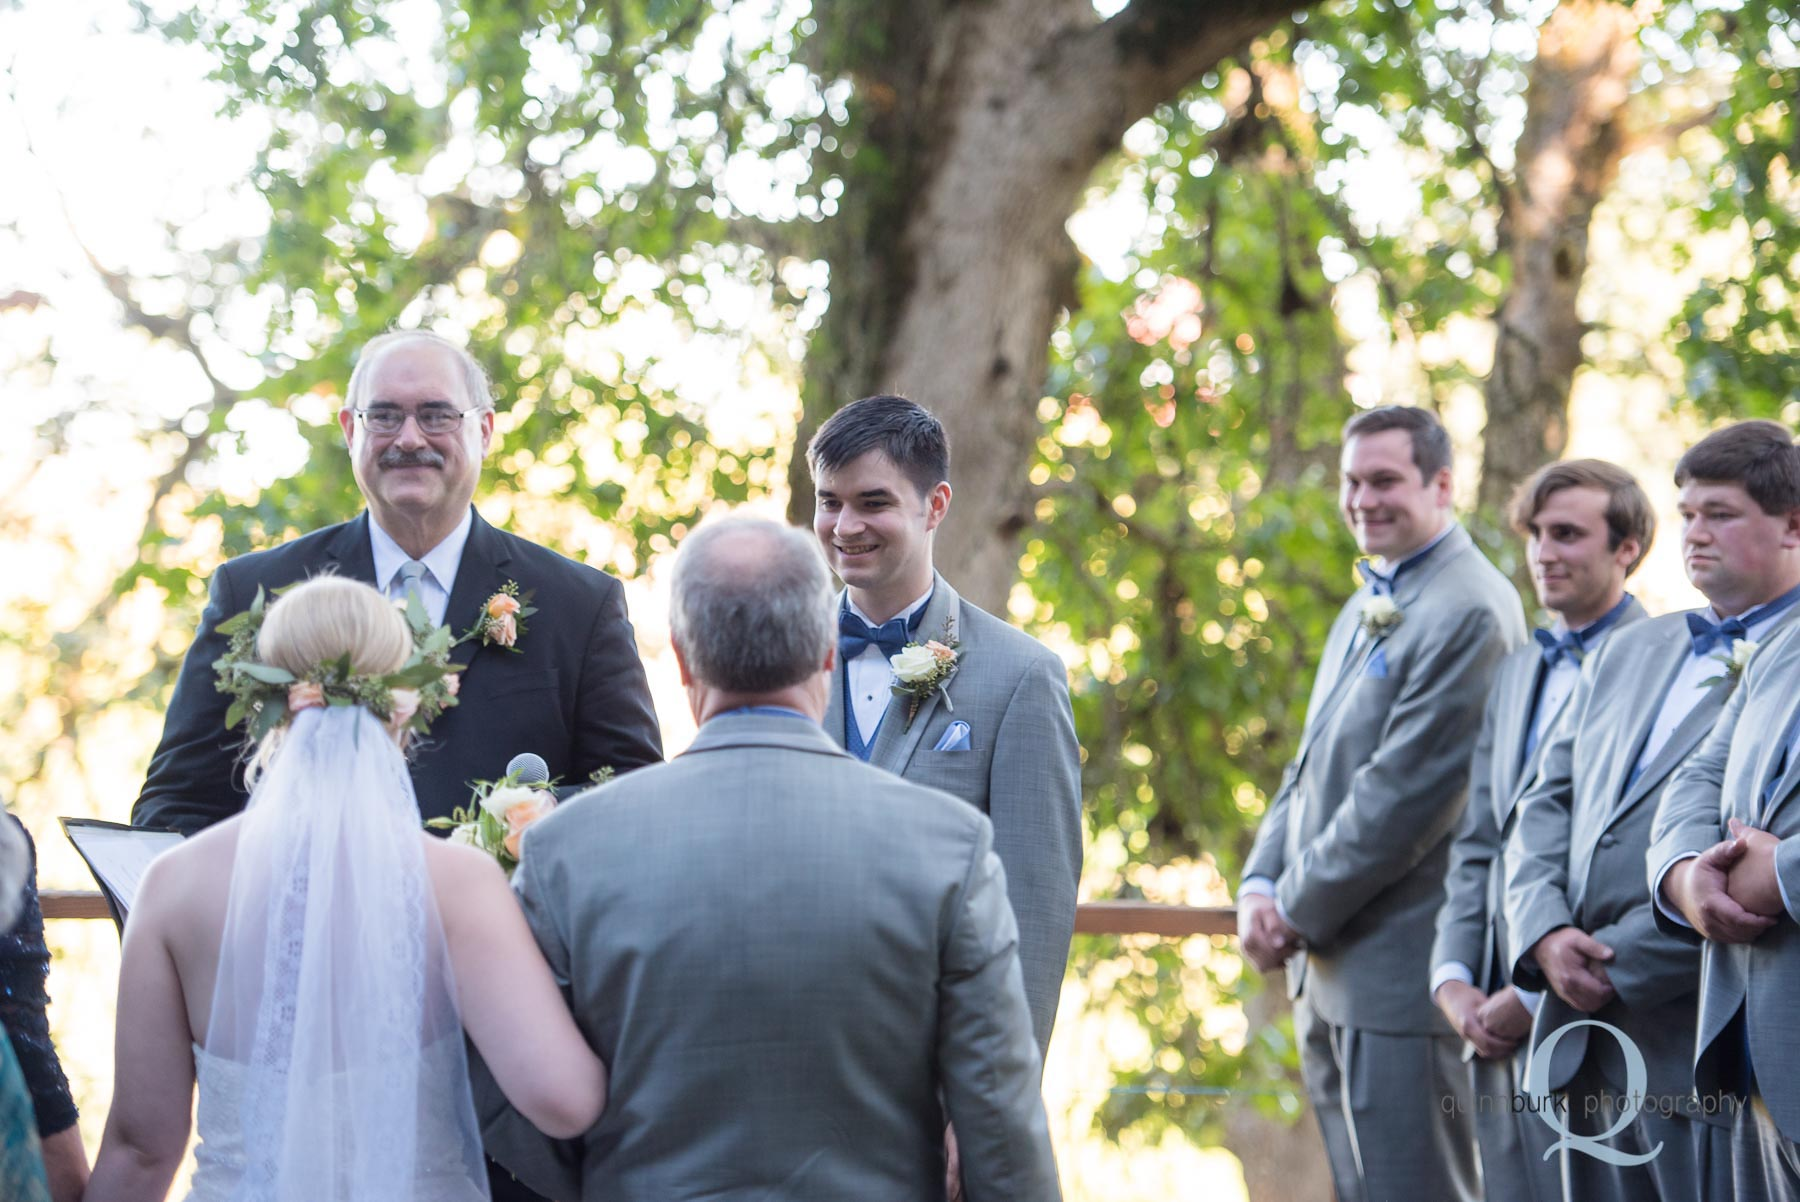 Perryhill Farm wedding ceremony